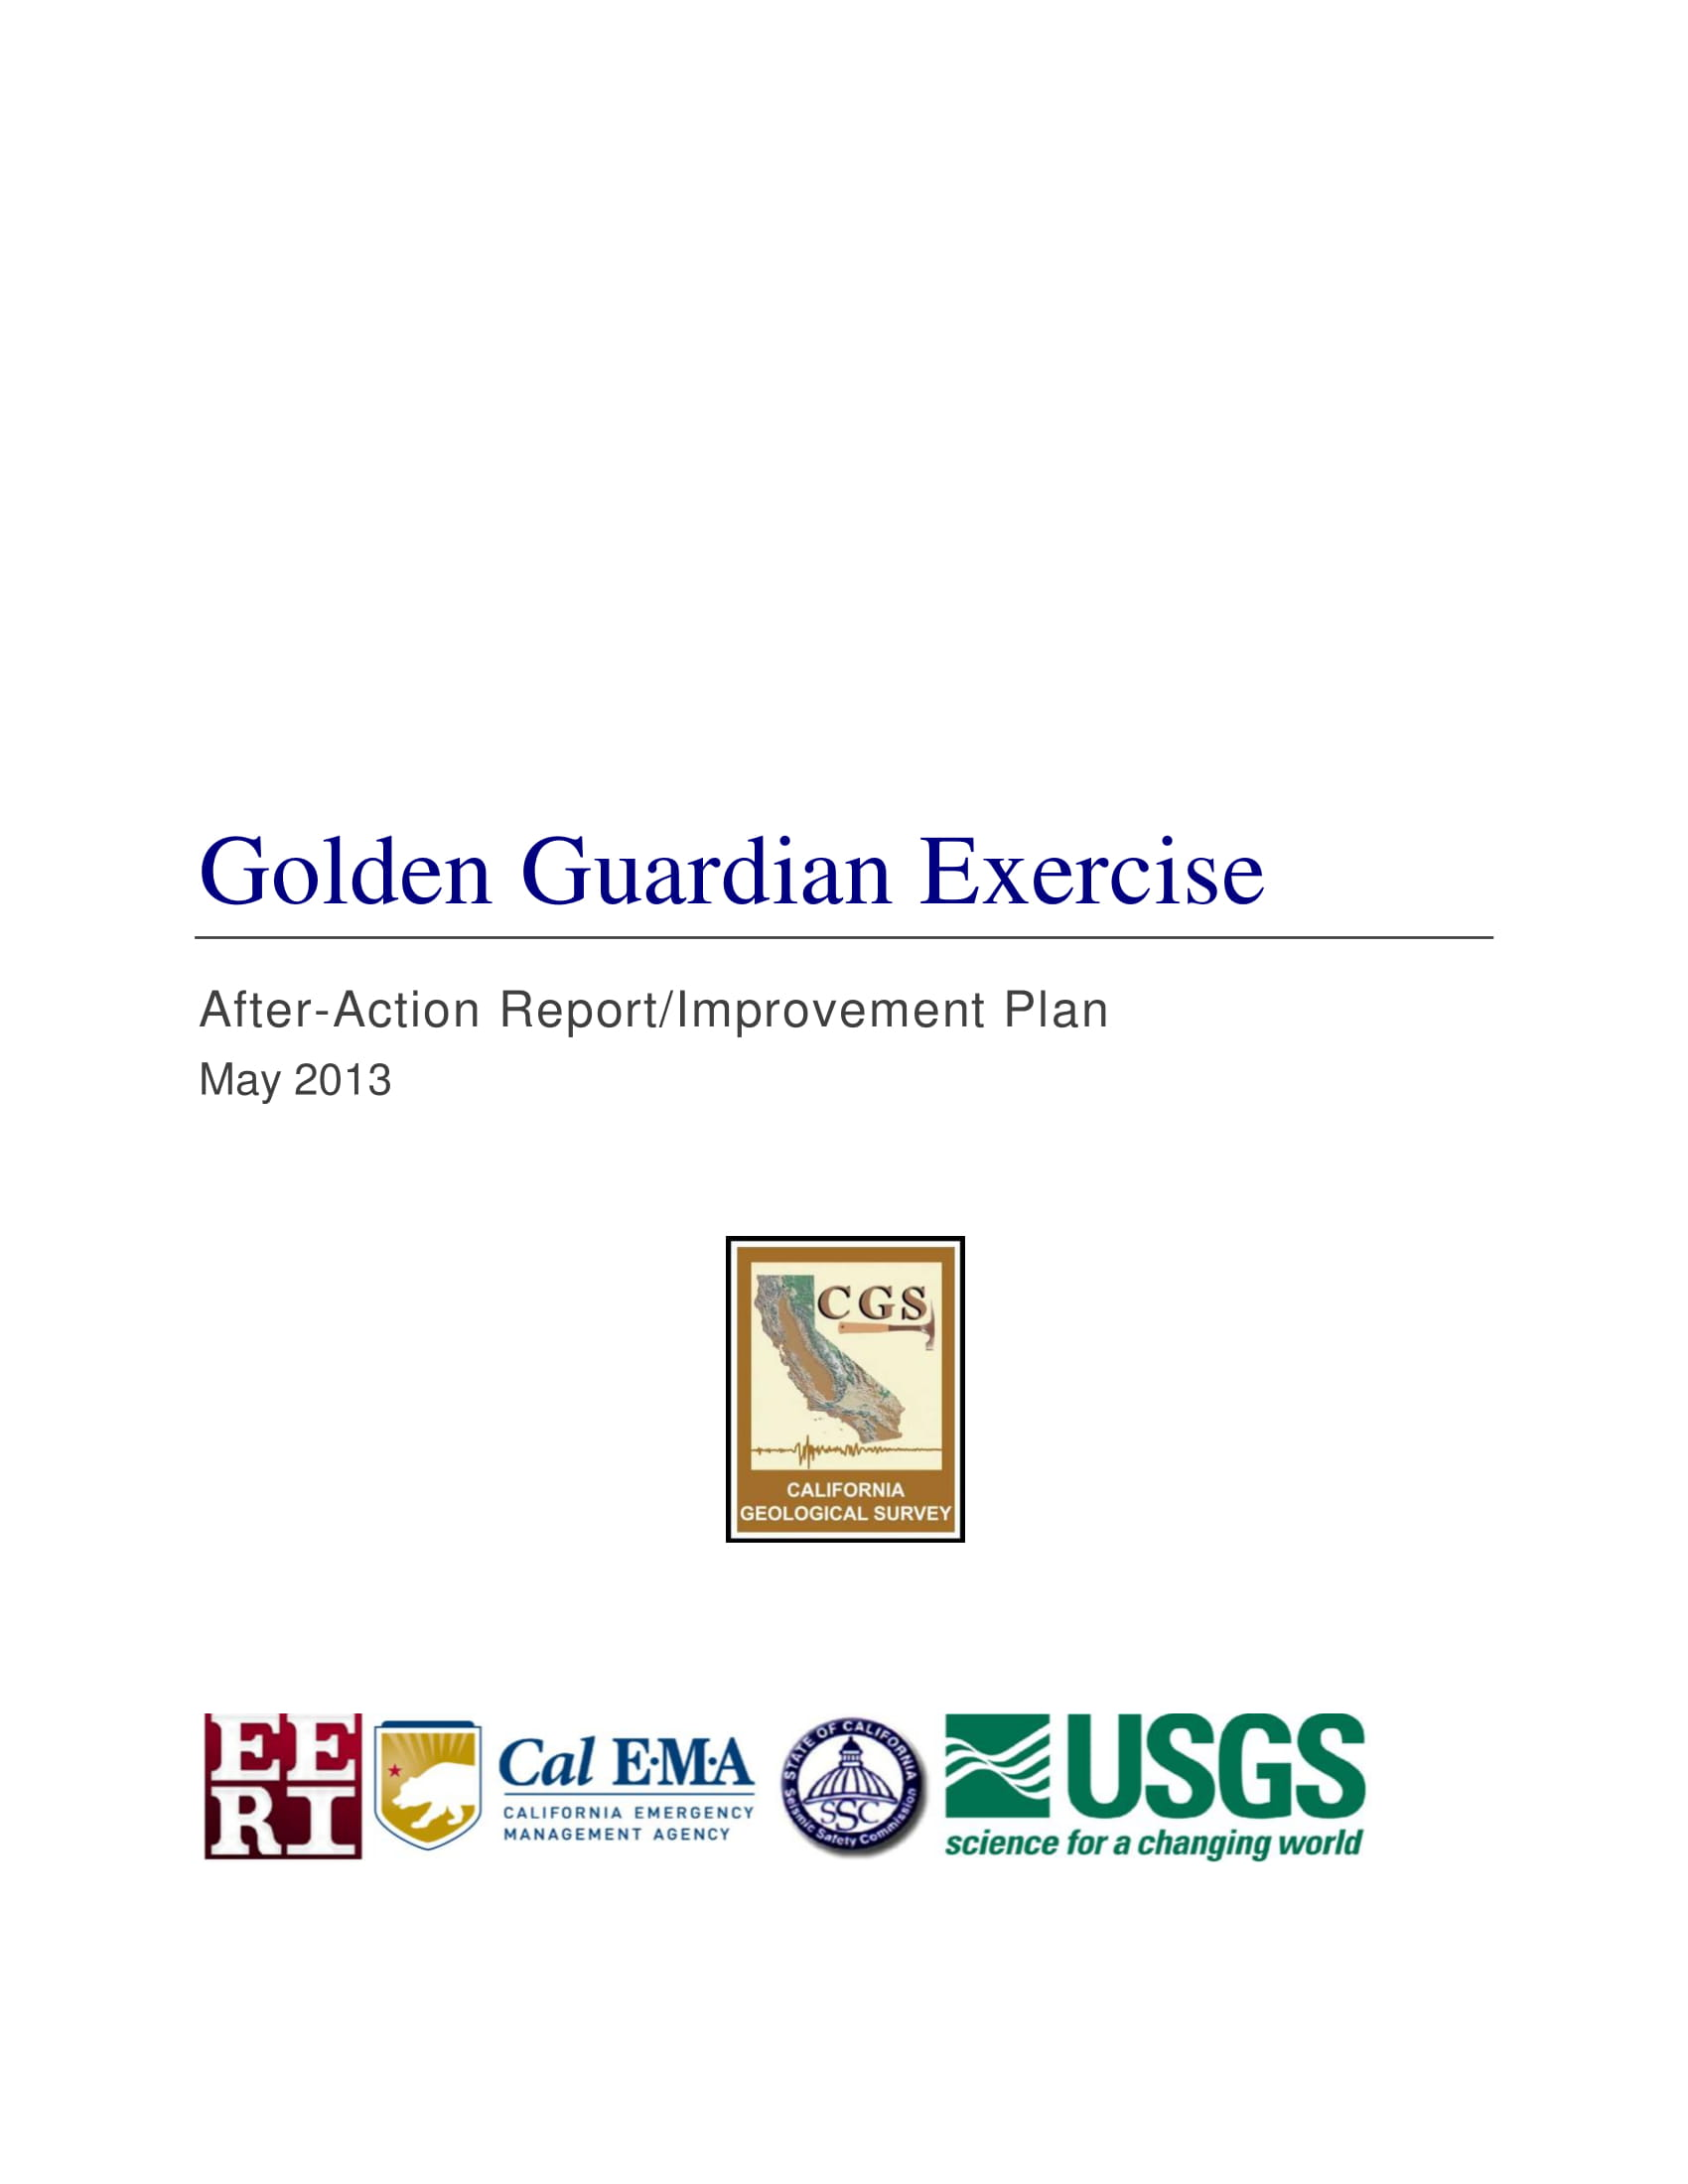 after action report and improvement plan template example 01